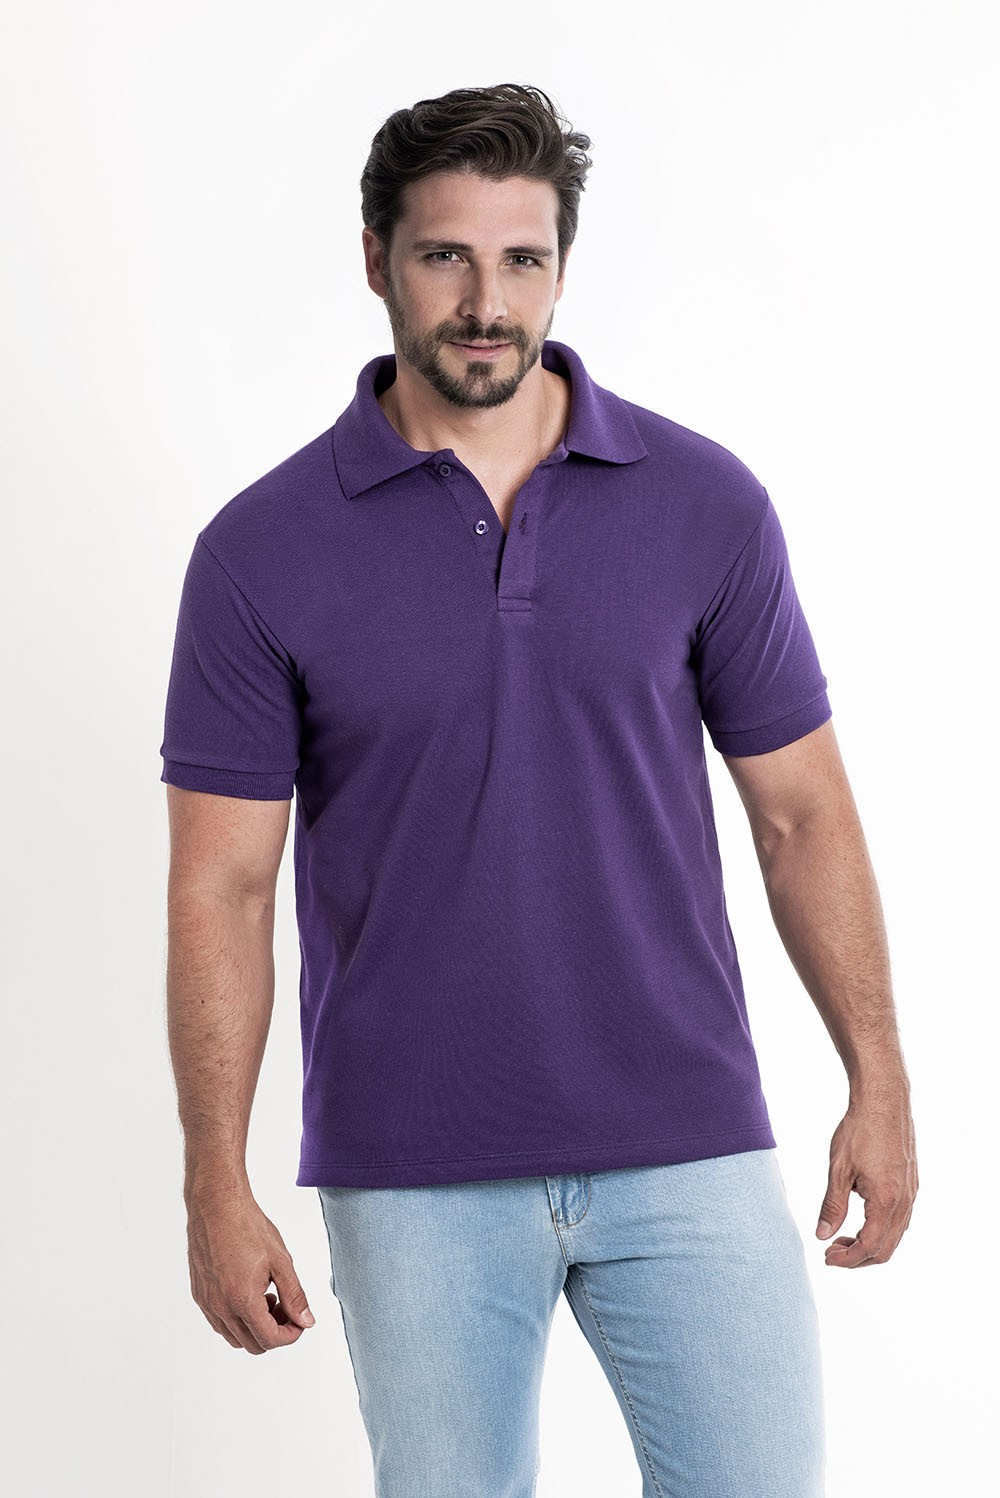 Camiseta Polo Roxo